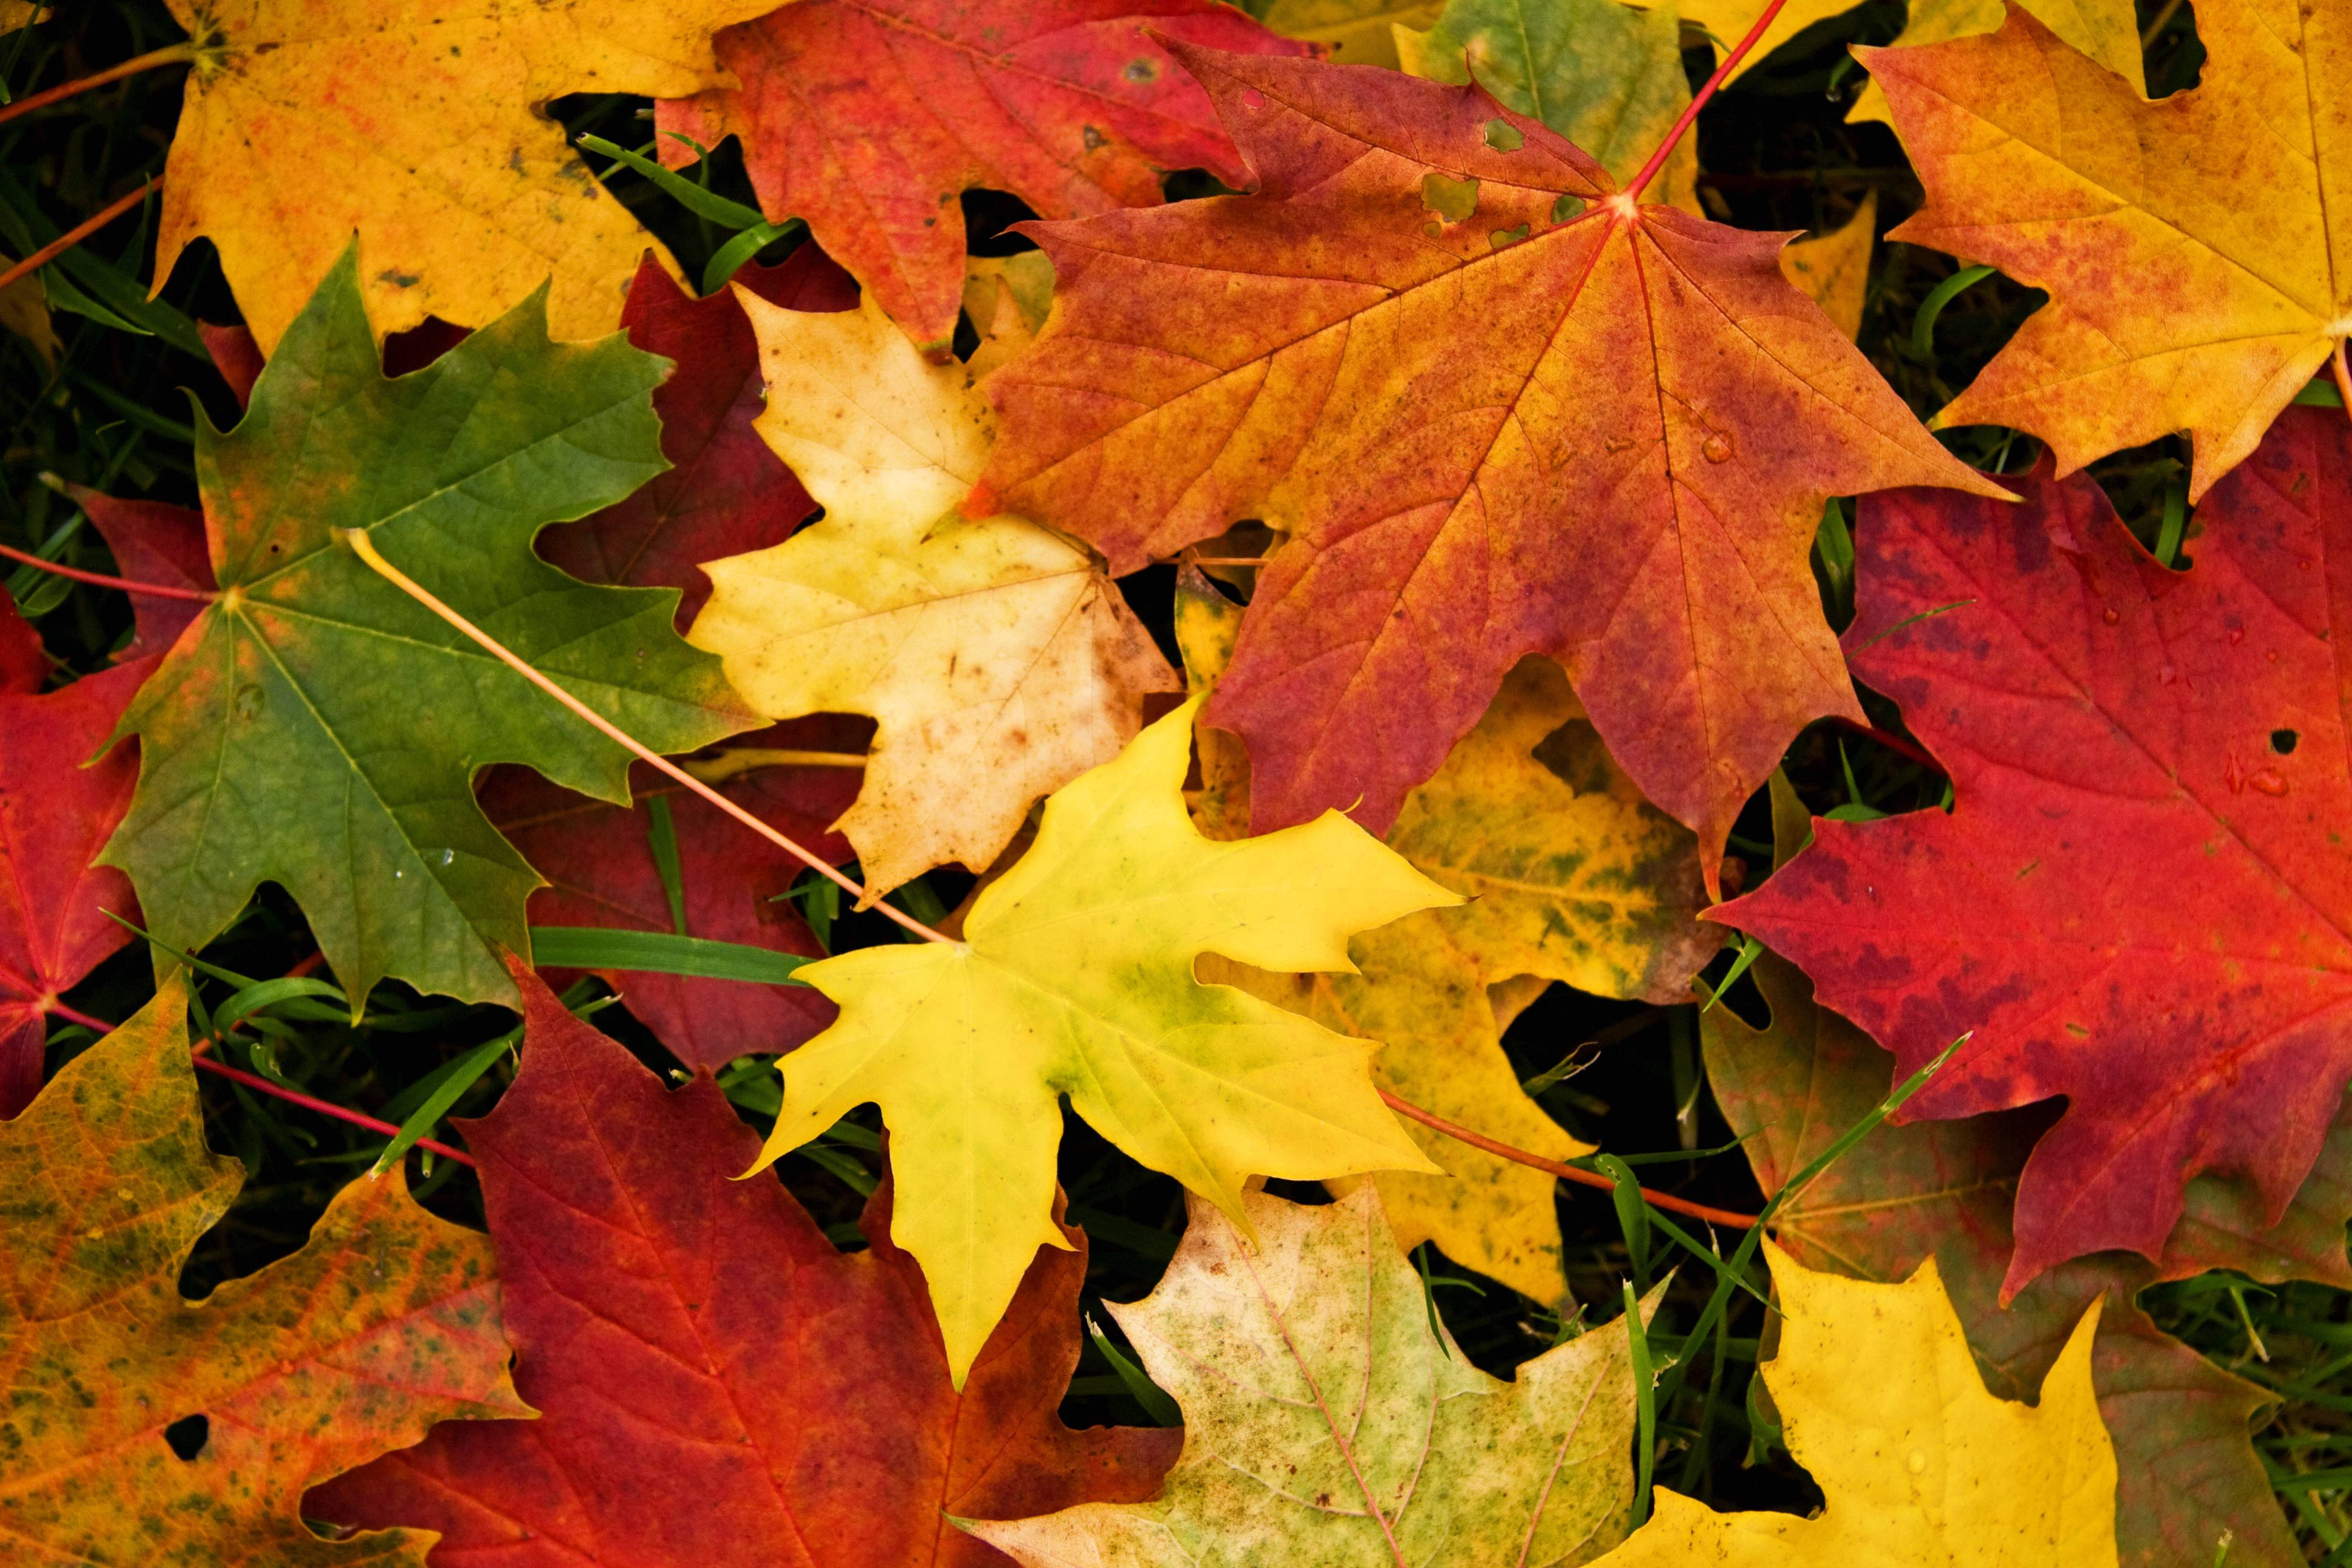 Free Desktop Wallpaper Autumn Leaves: Wallpapers Fall Leaves